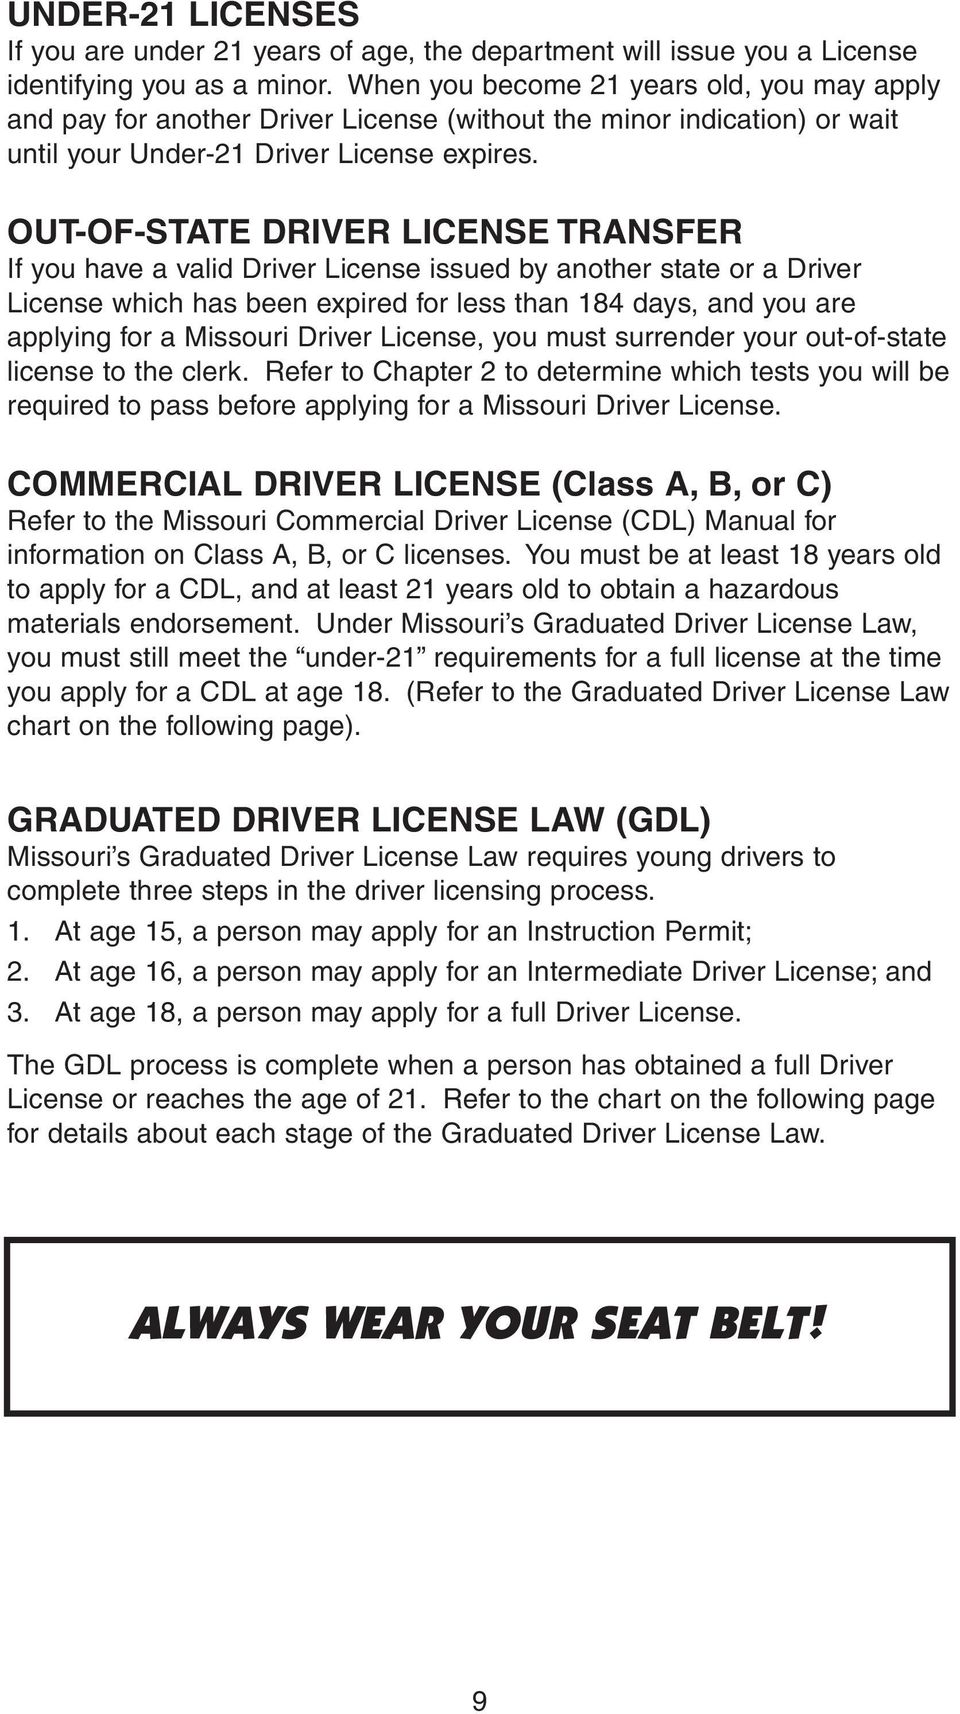 OUT-OF-STATE DRIVER LICENSE TRANSFER If you have a valid Driver License issued by another state or a Driver License which has been expired for less than 184 days, and you are applying for a Missouri